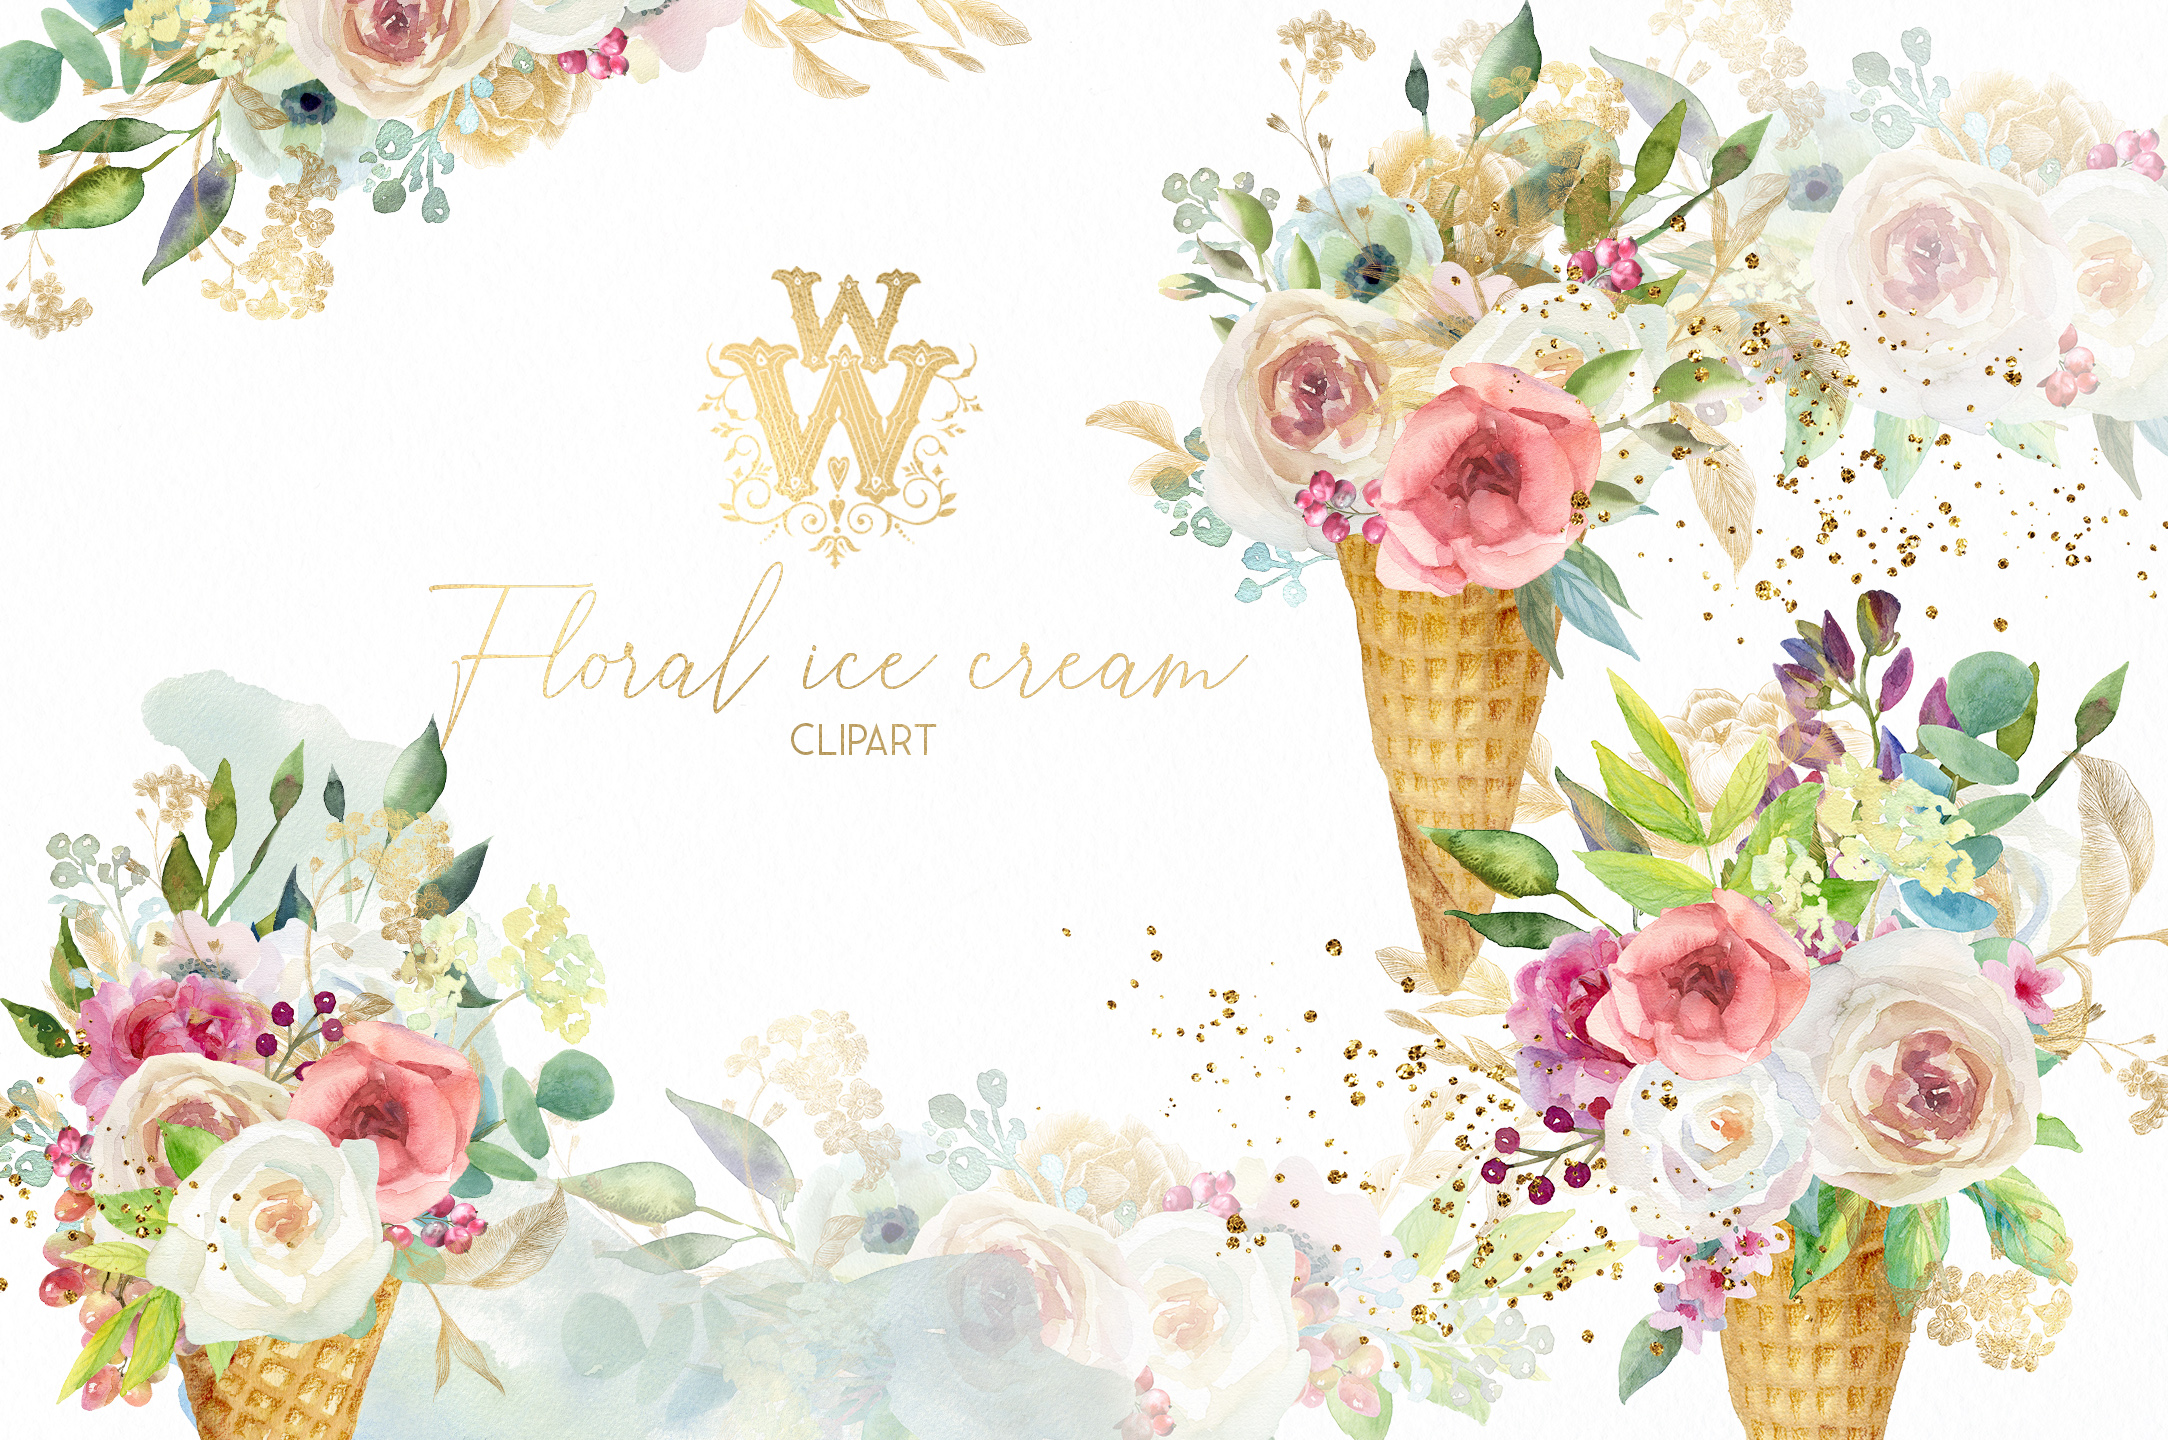 Watercolor floral Ice cream clip art, wedding clipart bridal.